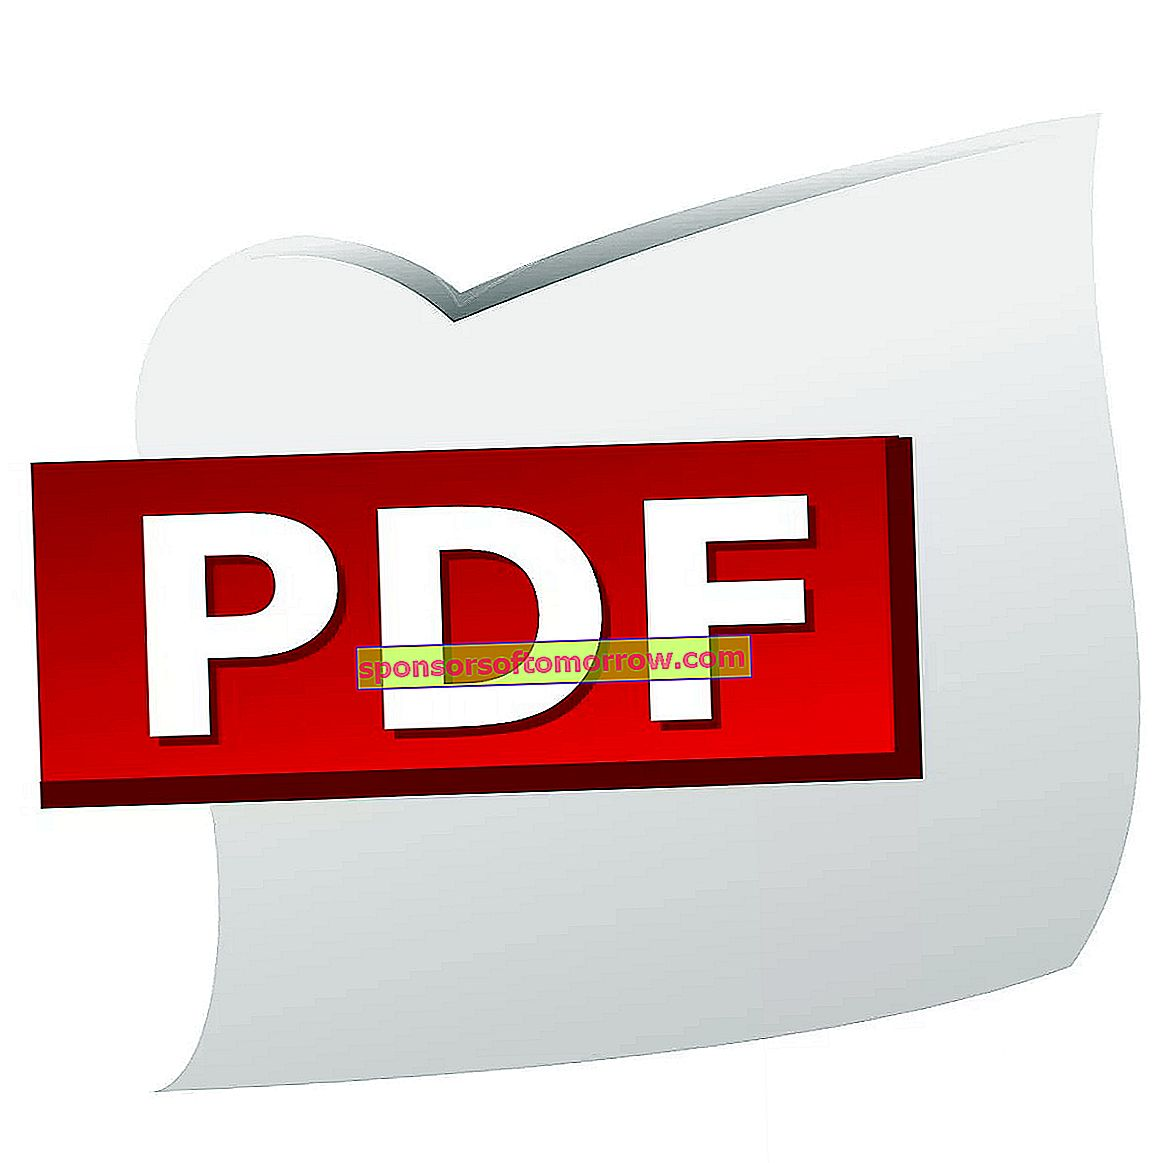 5 free apps to read PDF aloud